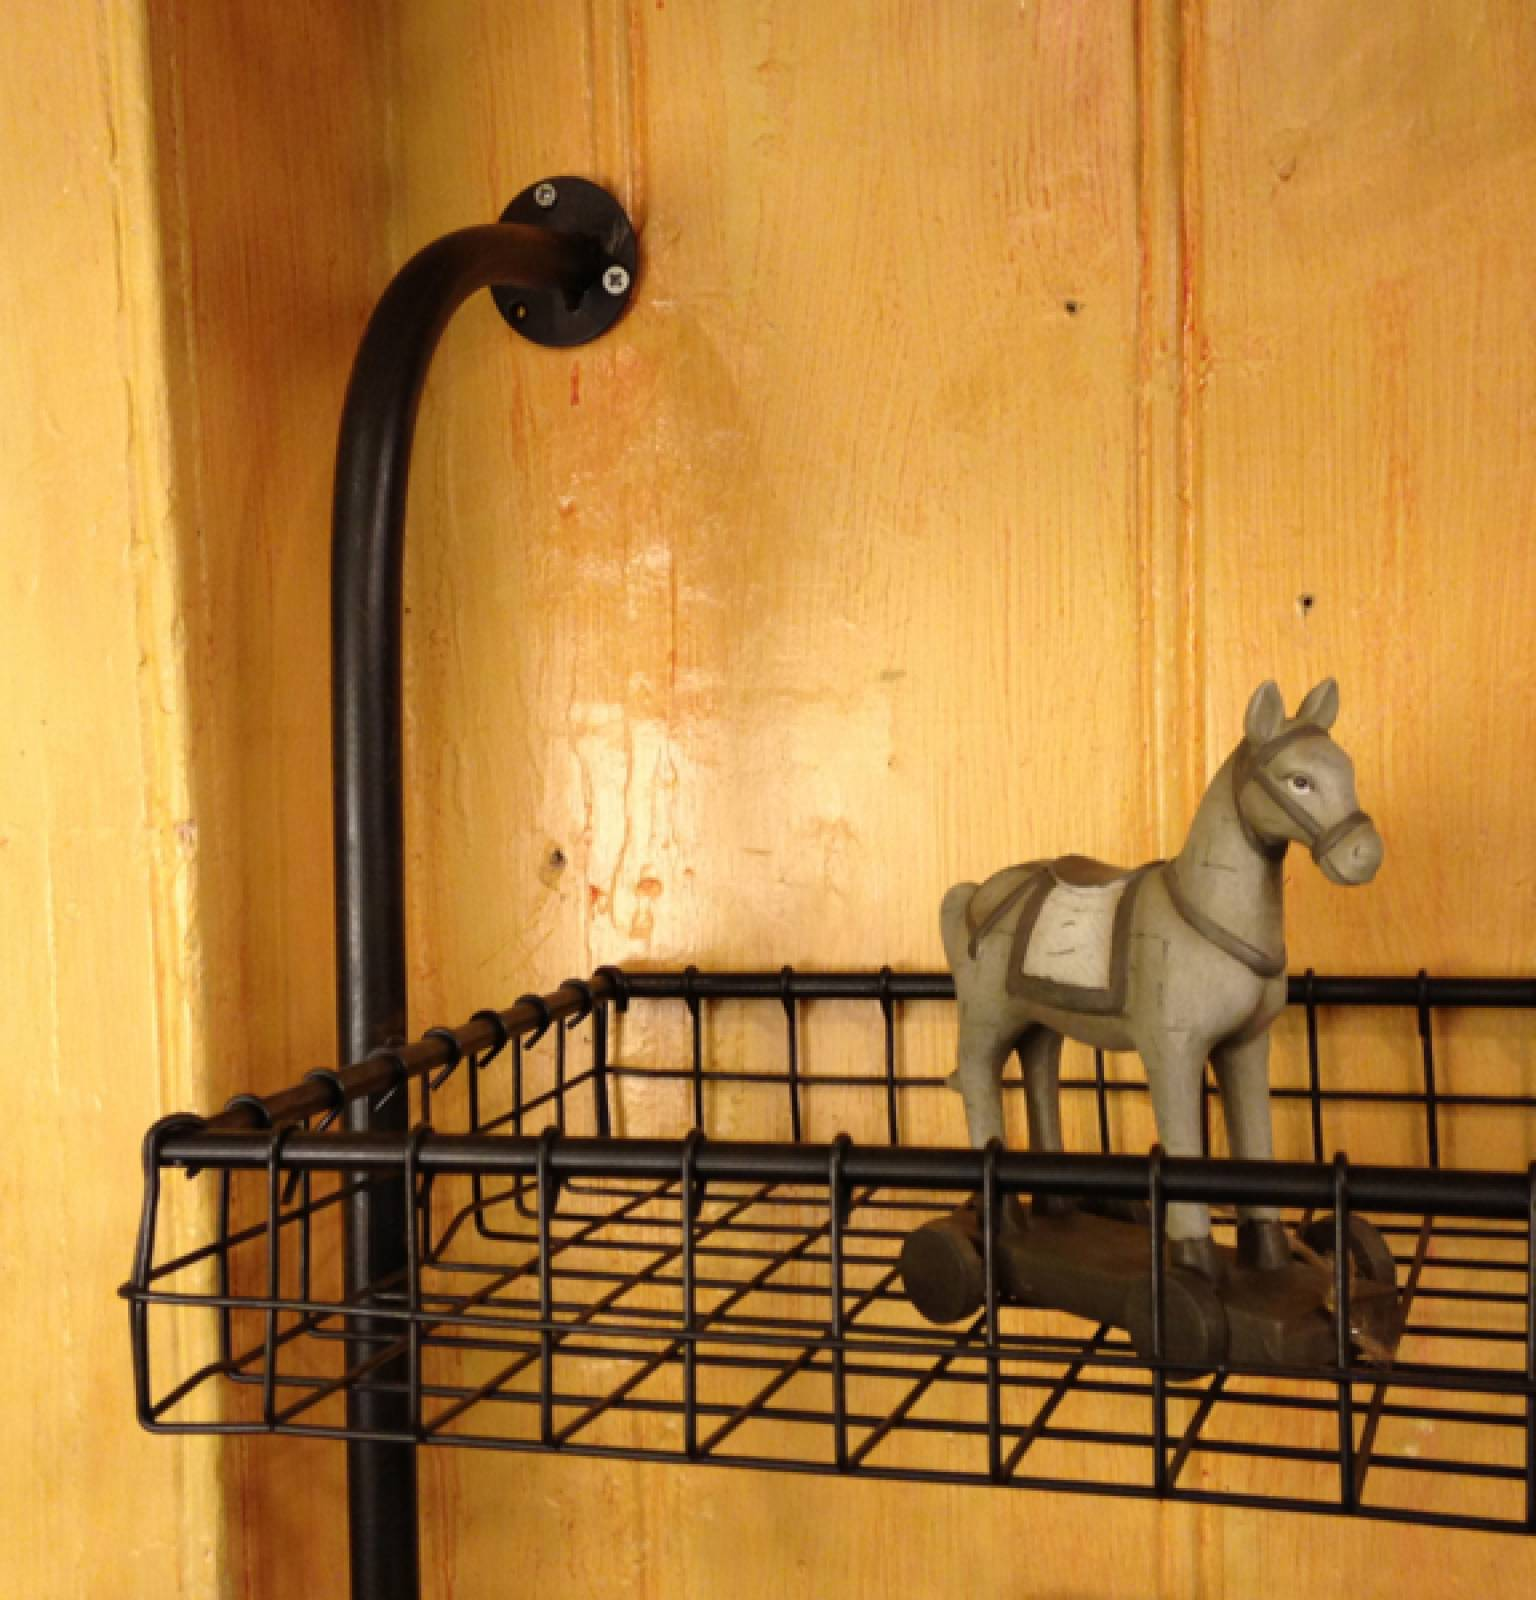 Wall Mounting Shelf Unit With 4 Wire Shelves thumbnails